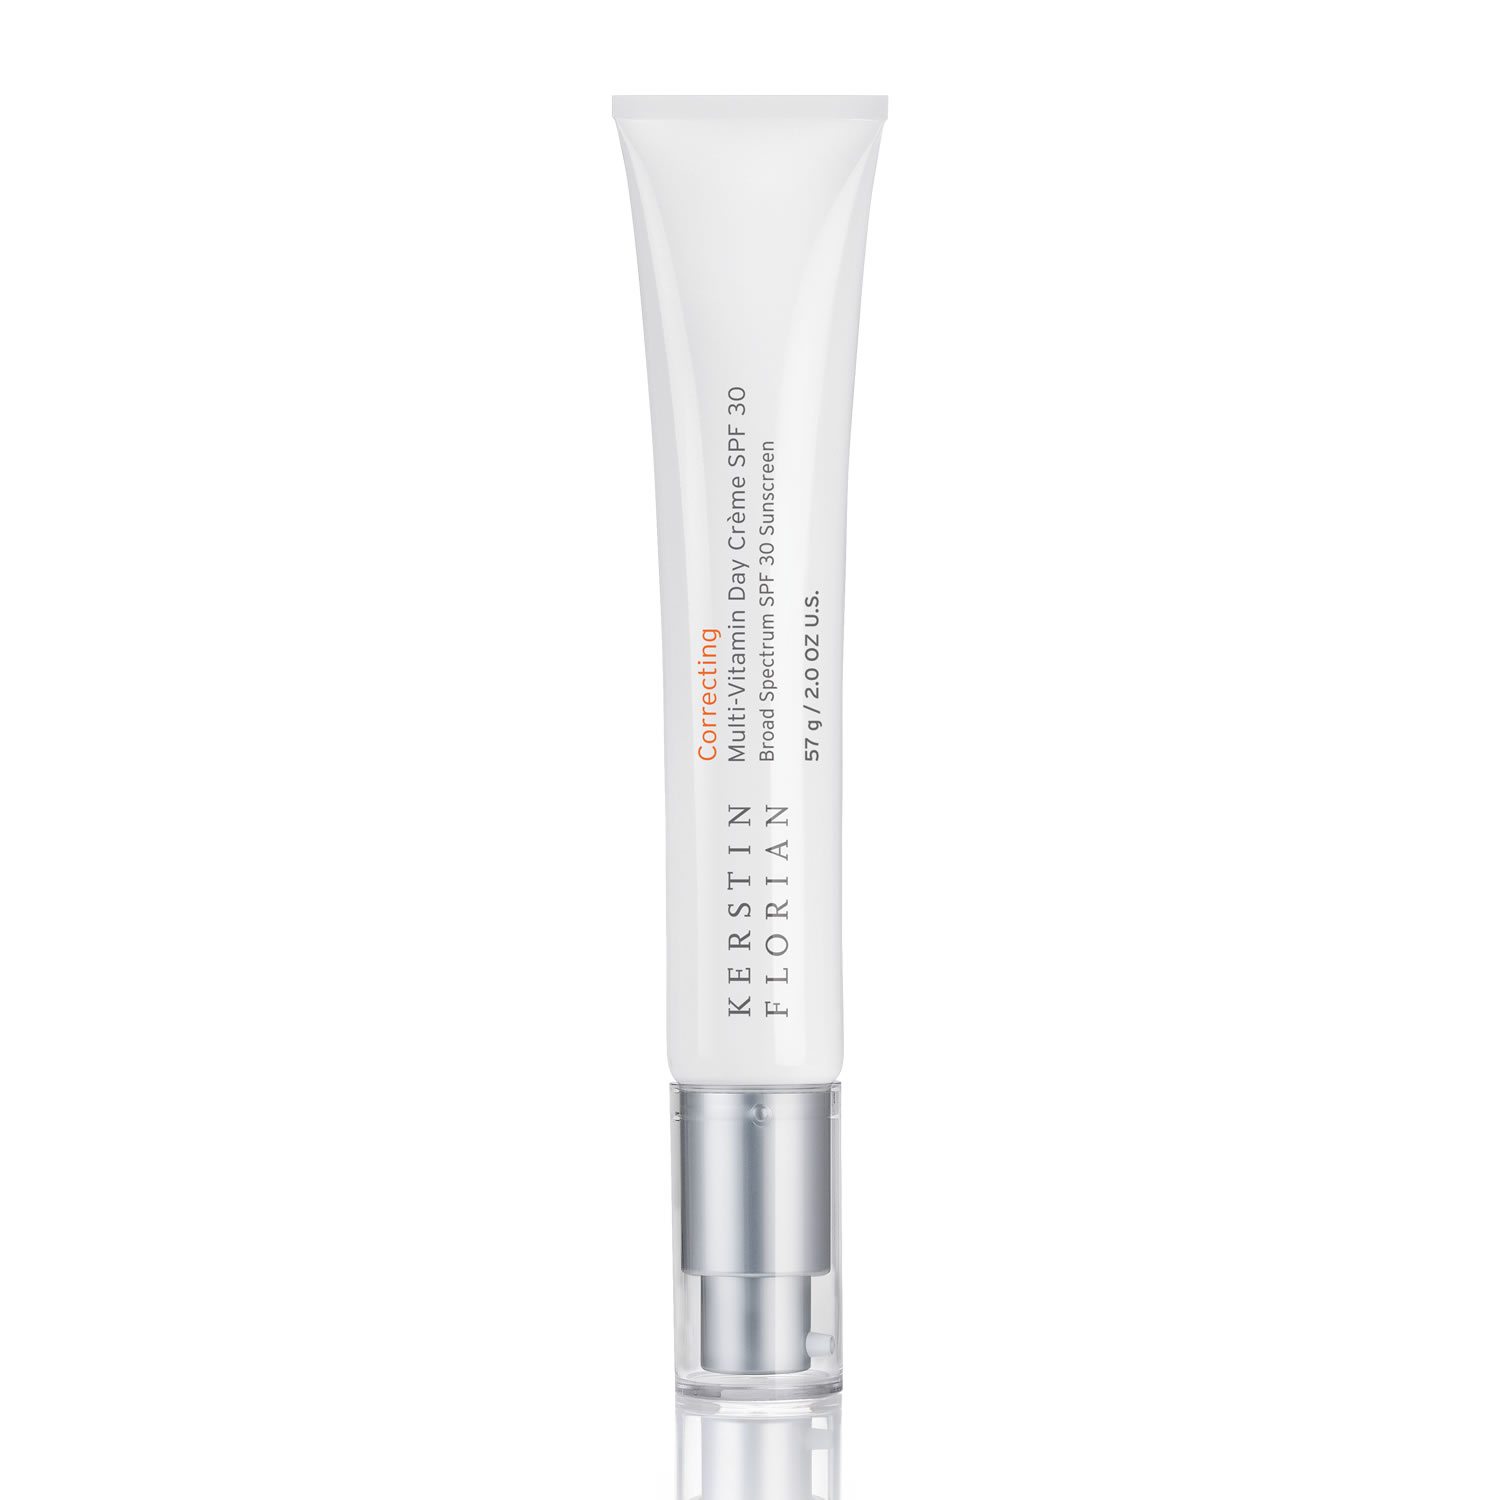 Kerstin Florian Correcting Multi-Vitamin Day Creme SPF 30 (50 ml / 1.7 fl oz)